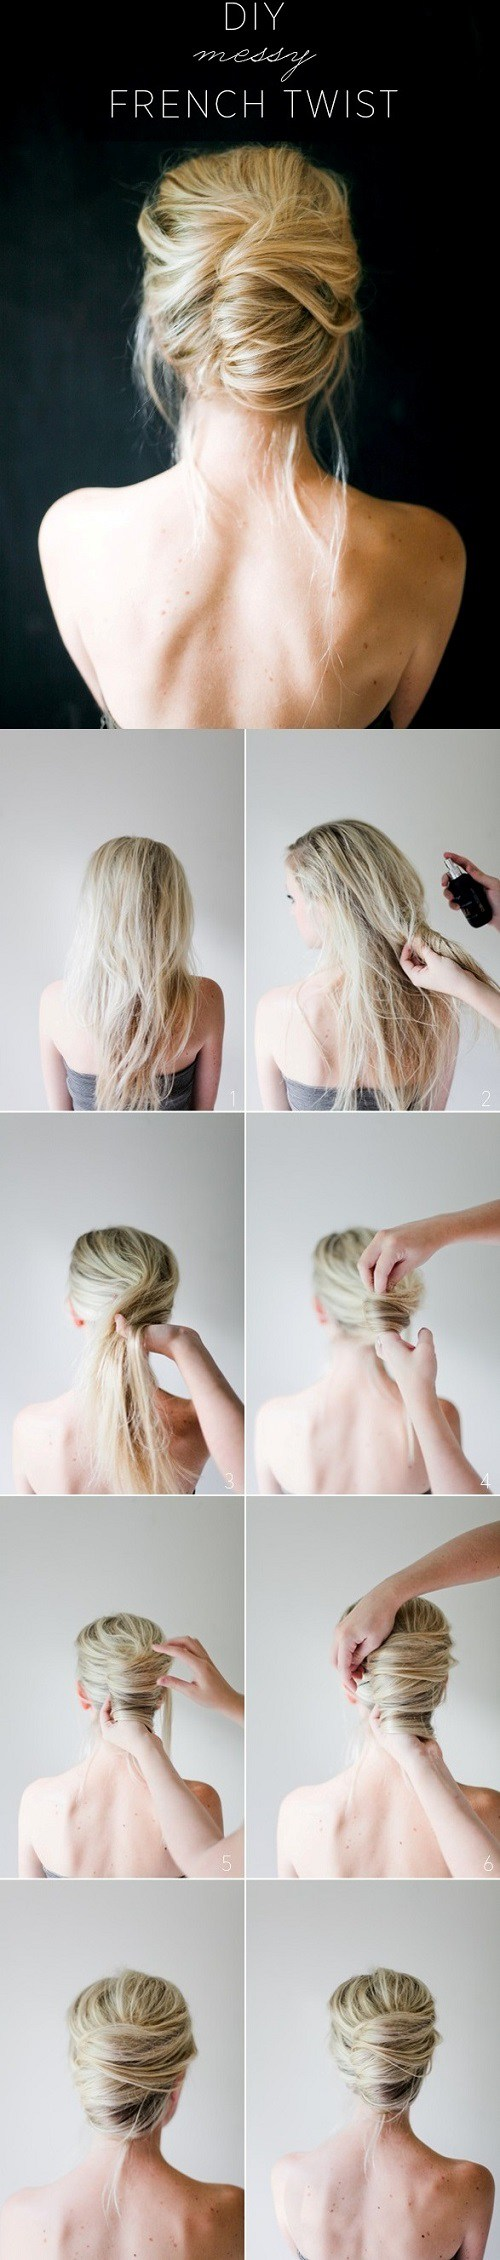 20 Simple Easy Hair Tutorials for Medium & Long Hair